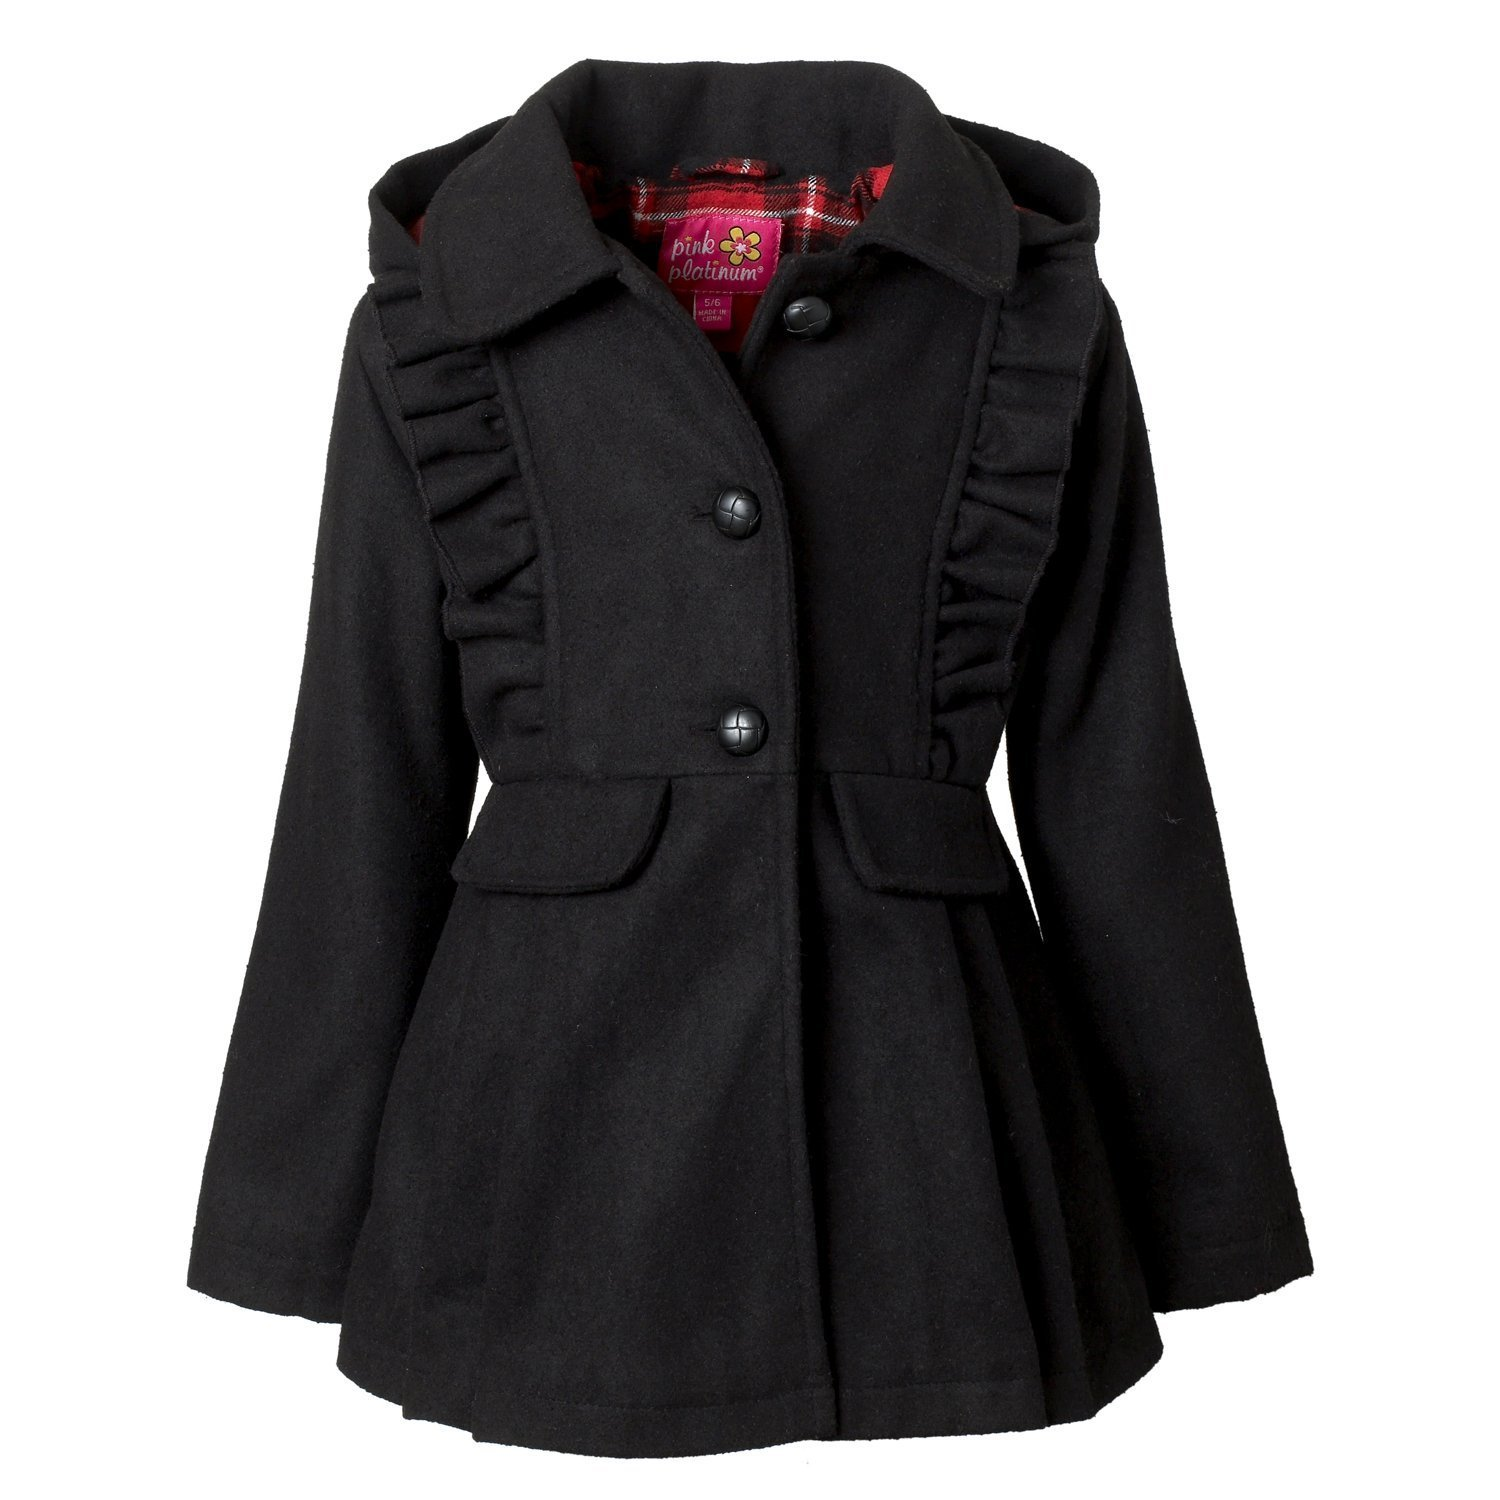 Pink Platinum Wool Coat for Girls, Babies & Toddlers –, Black, Size 24 Months